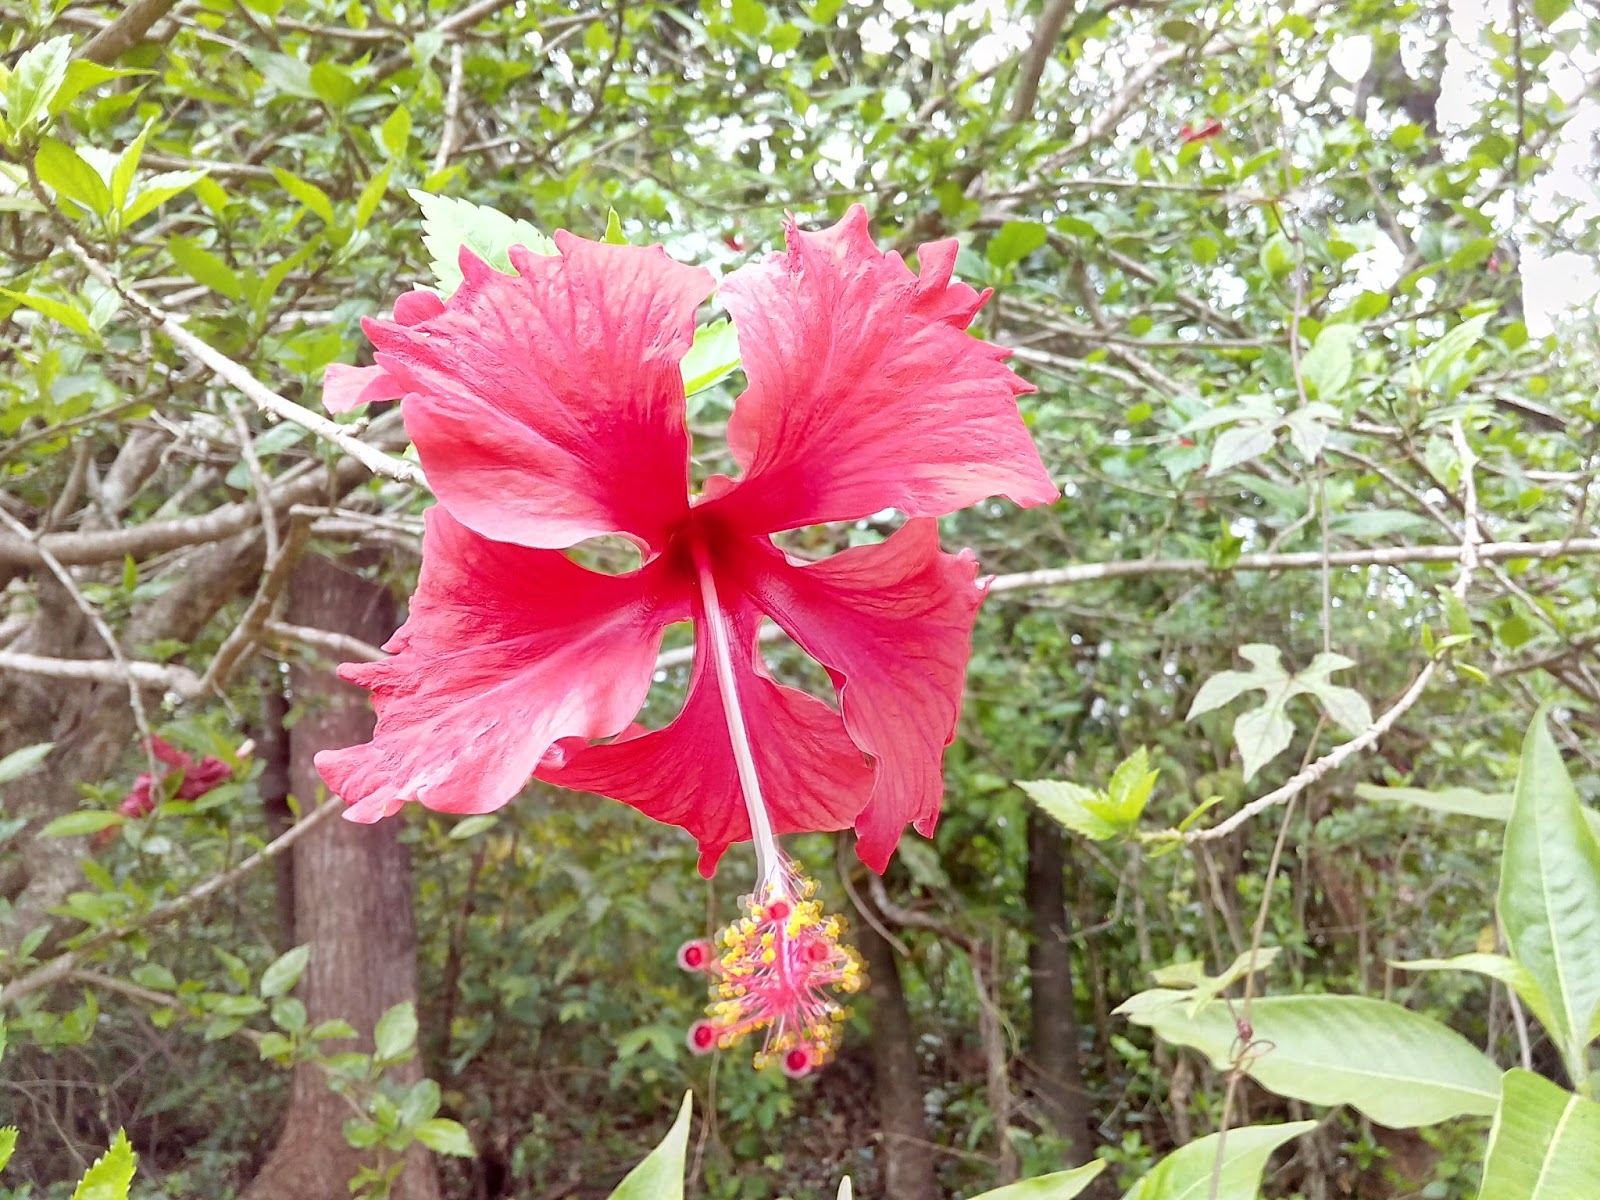 Jaswand hibiscus flower beautiful konkan hibiscus flower is known for its beauty as well as its medicinal uses and gardeners cultivate the plant for its showy flowers izmirmasajfo Choice Image